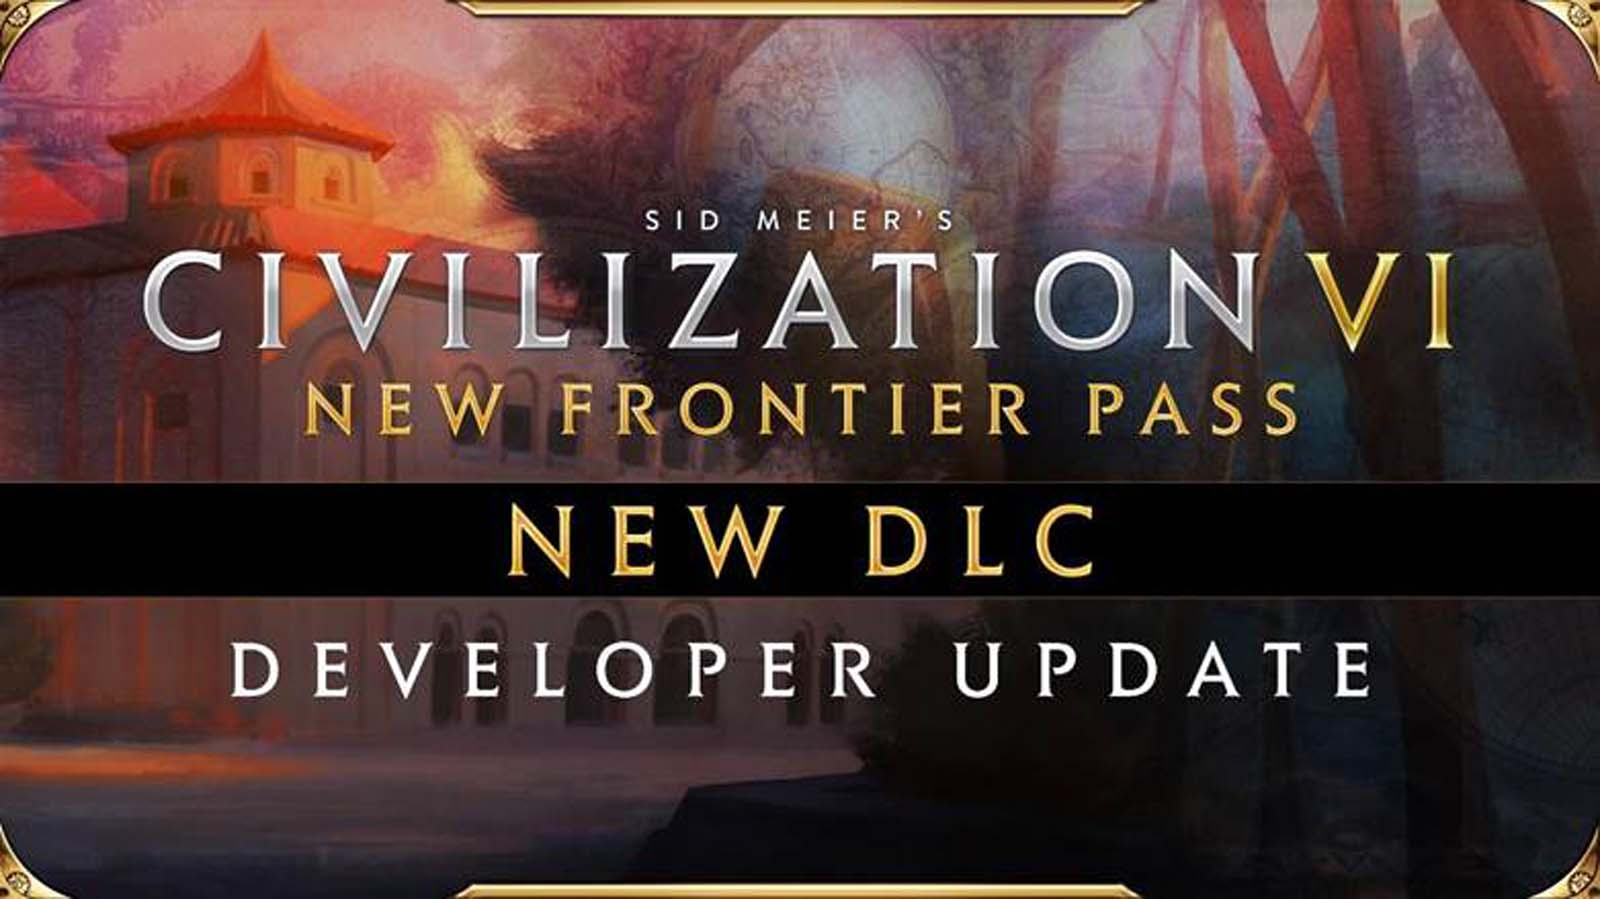 Civilization VI – New Frontier Pass Byzantium and Gaul Pack Available on September 24